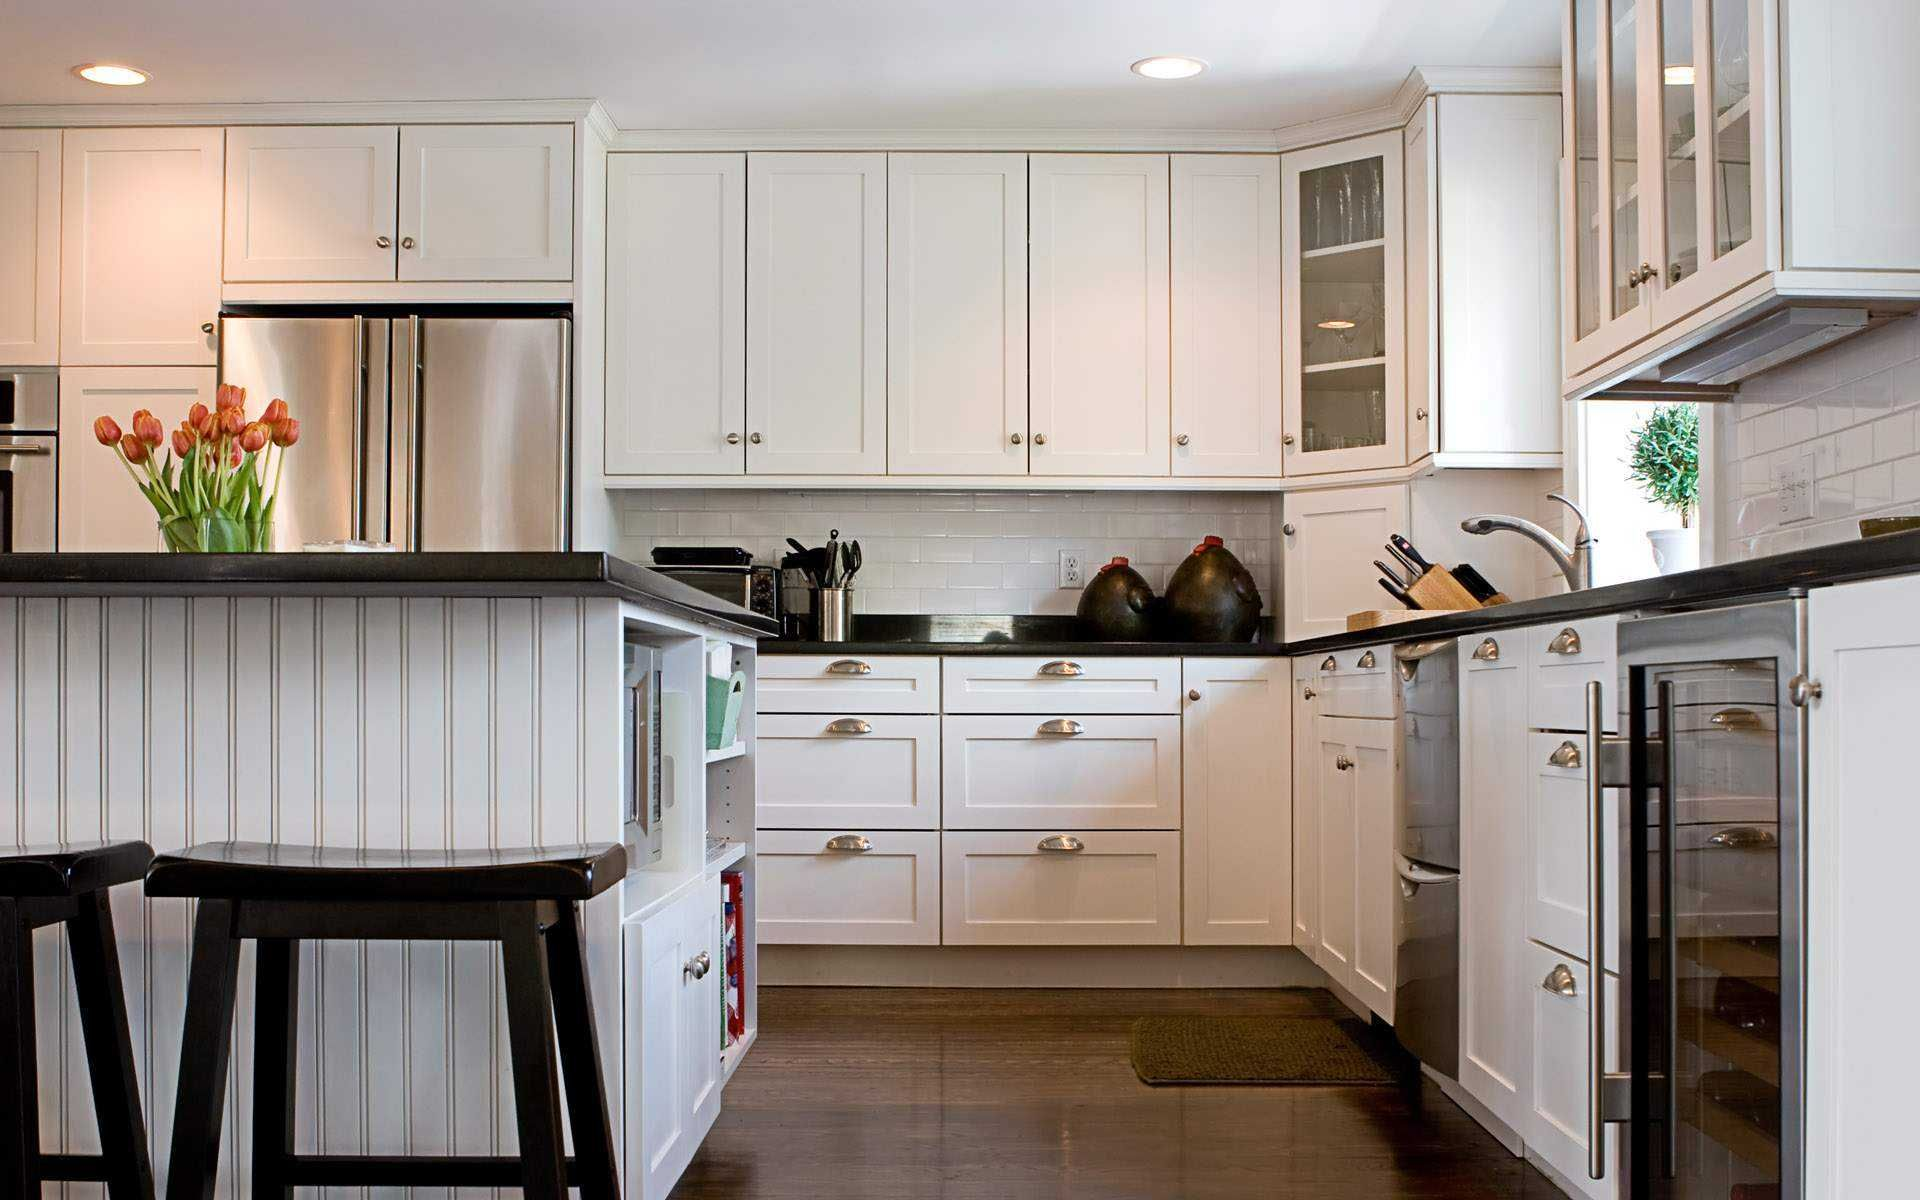 Lavishly Appointed Small White Kitchens With Ikea Furnishing Sets Classy Kitchen Cabinet Design Ikea Design Ideas